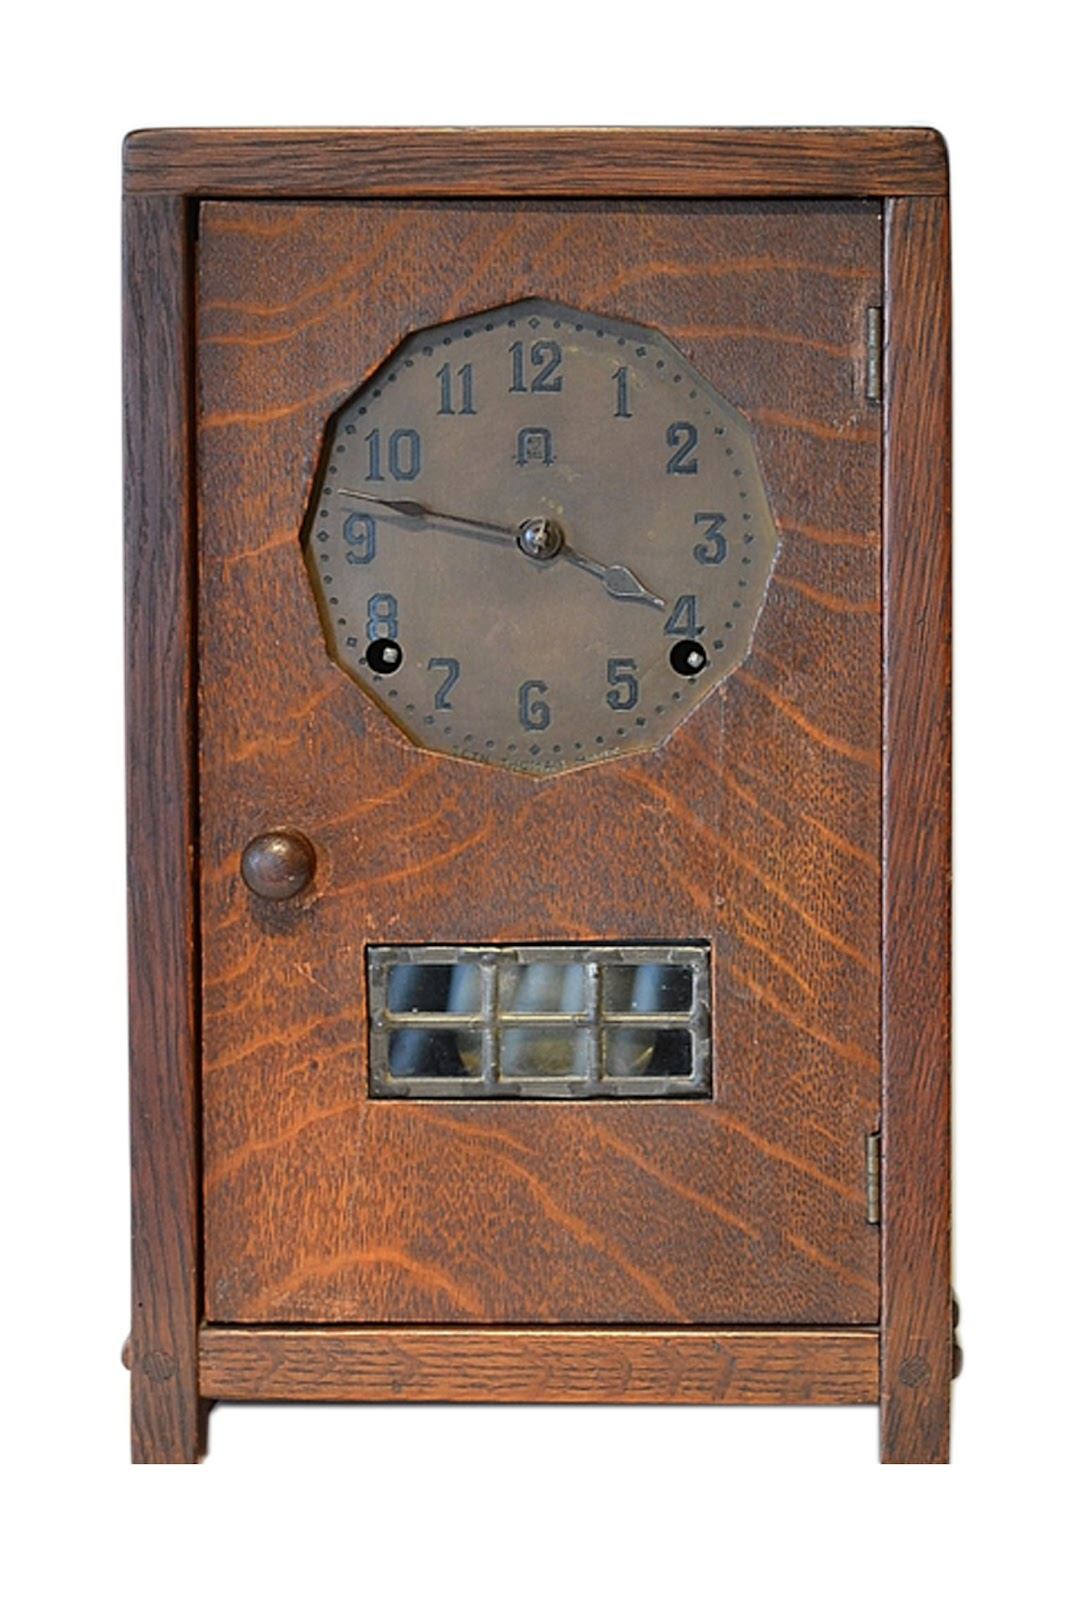 "Gustav Stickley Mantel Clock 14"" tall. Photo courtesy of Dalton's American Decorative Arts."